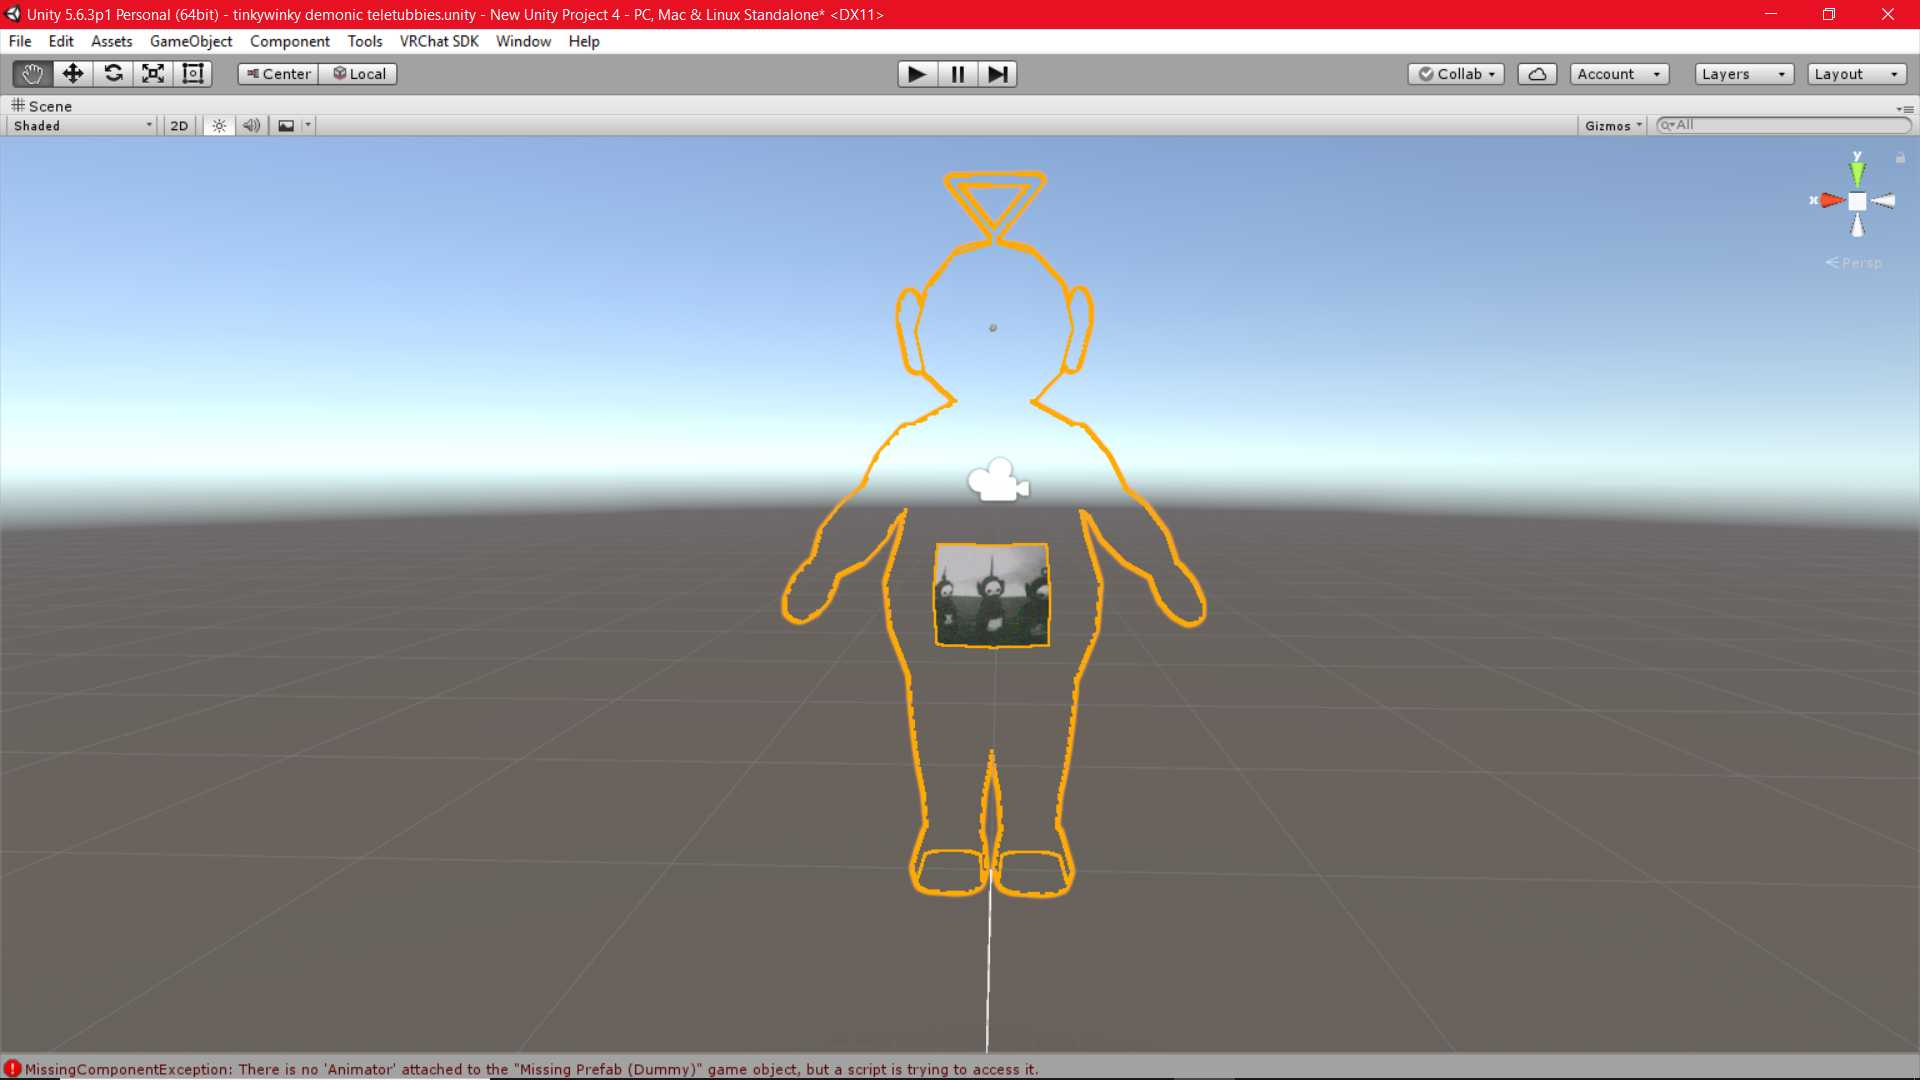 VRCMods - Tinky Winky Ghost (demonic teletubbies) - VRChat Avatars